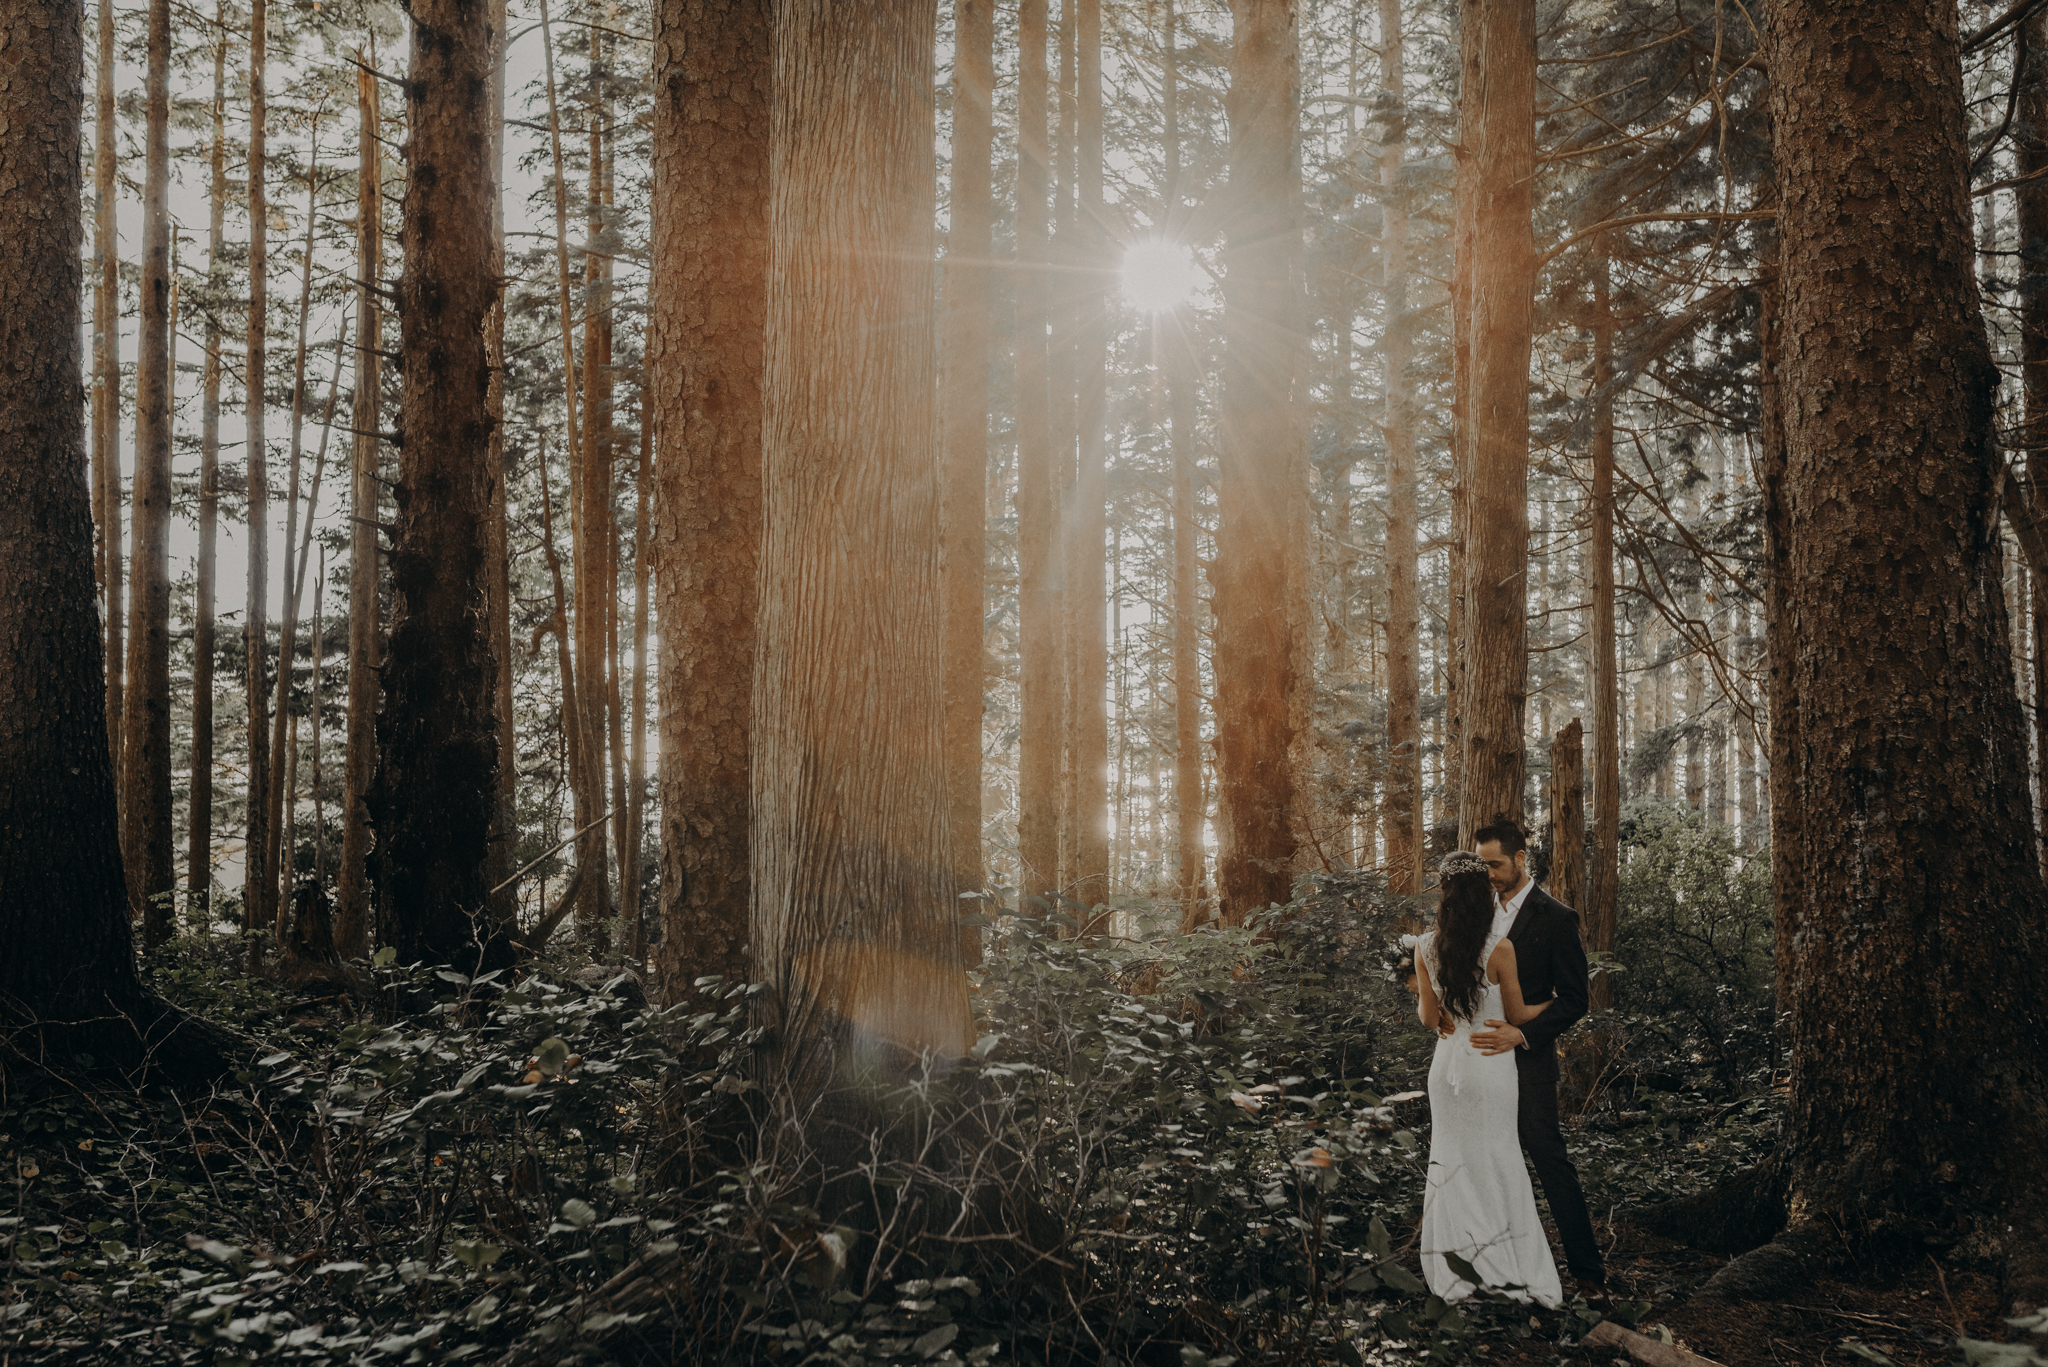 Isaiah + Taylor Photography - Cape Flattery Elopement, Olympia National Forest Wedding Photographer-094.jpg